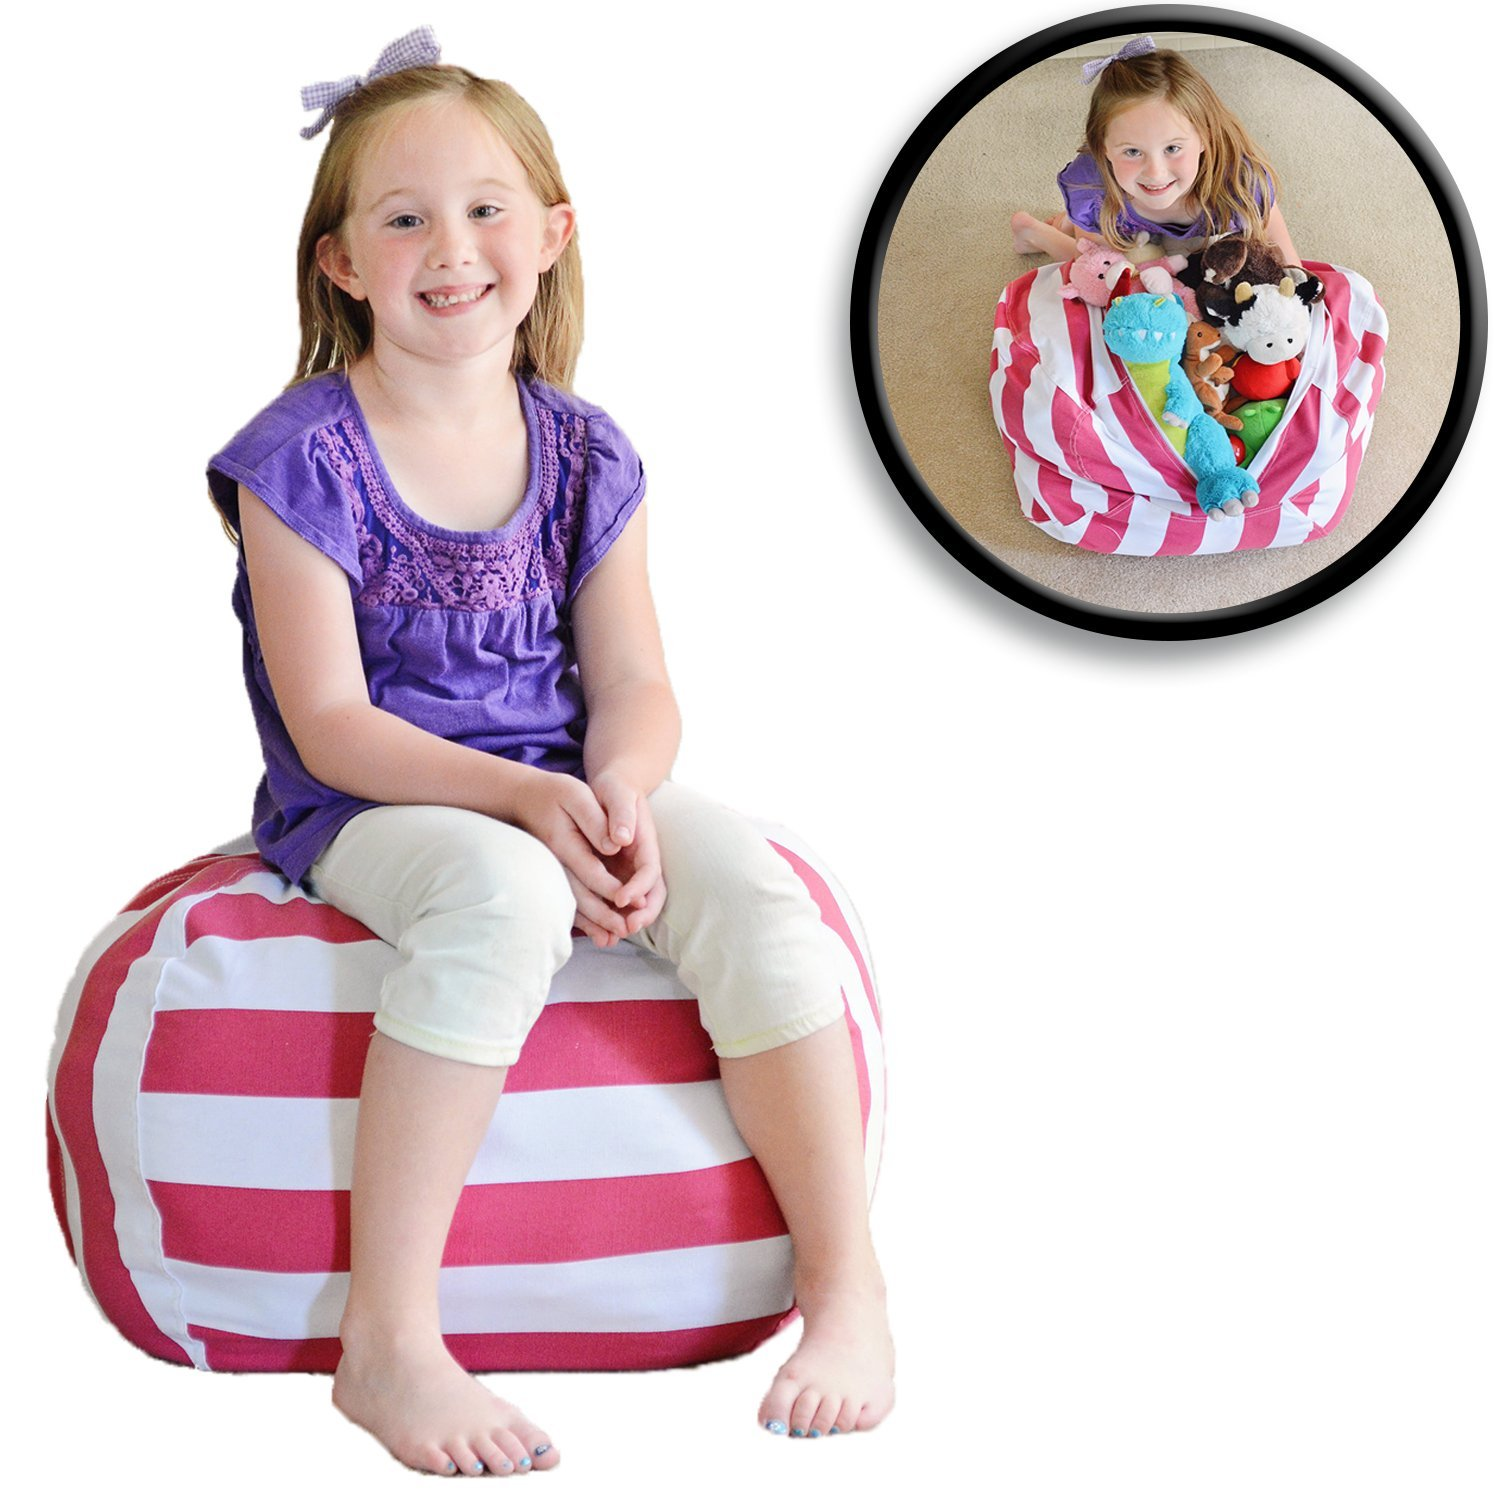 "Stuffed Animal Storage Bean Bag Chair - Red/White Striped - Clean up the Room and Put Those Critters to Work for You! - By Creative QT (30"", Pink Stripe)"